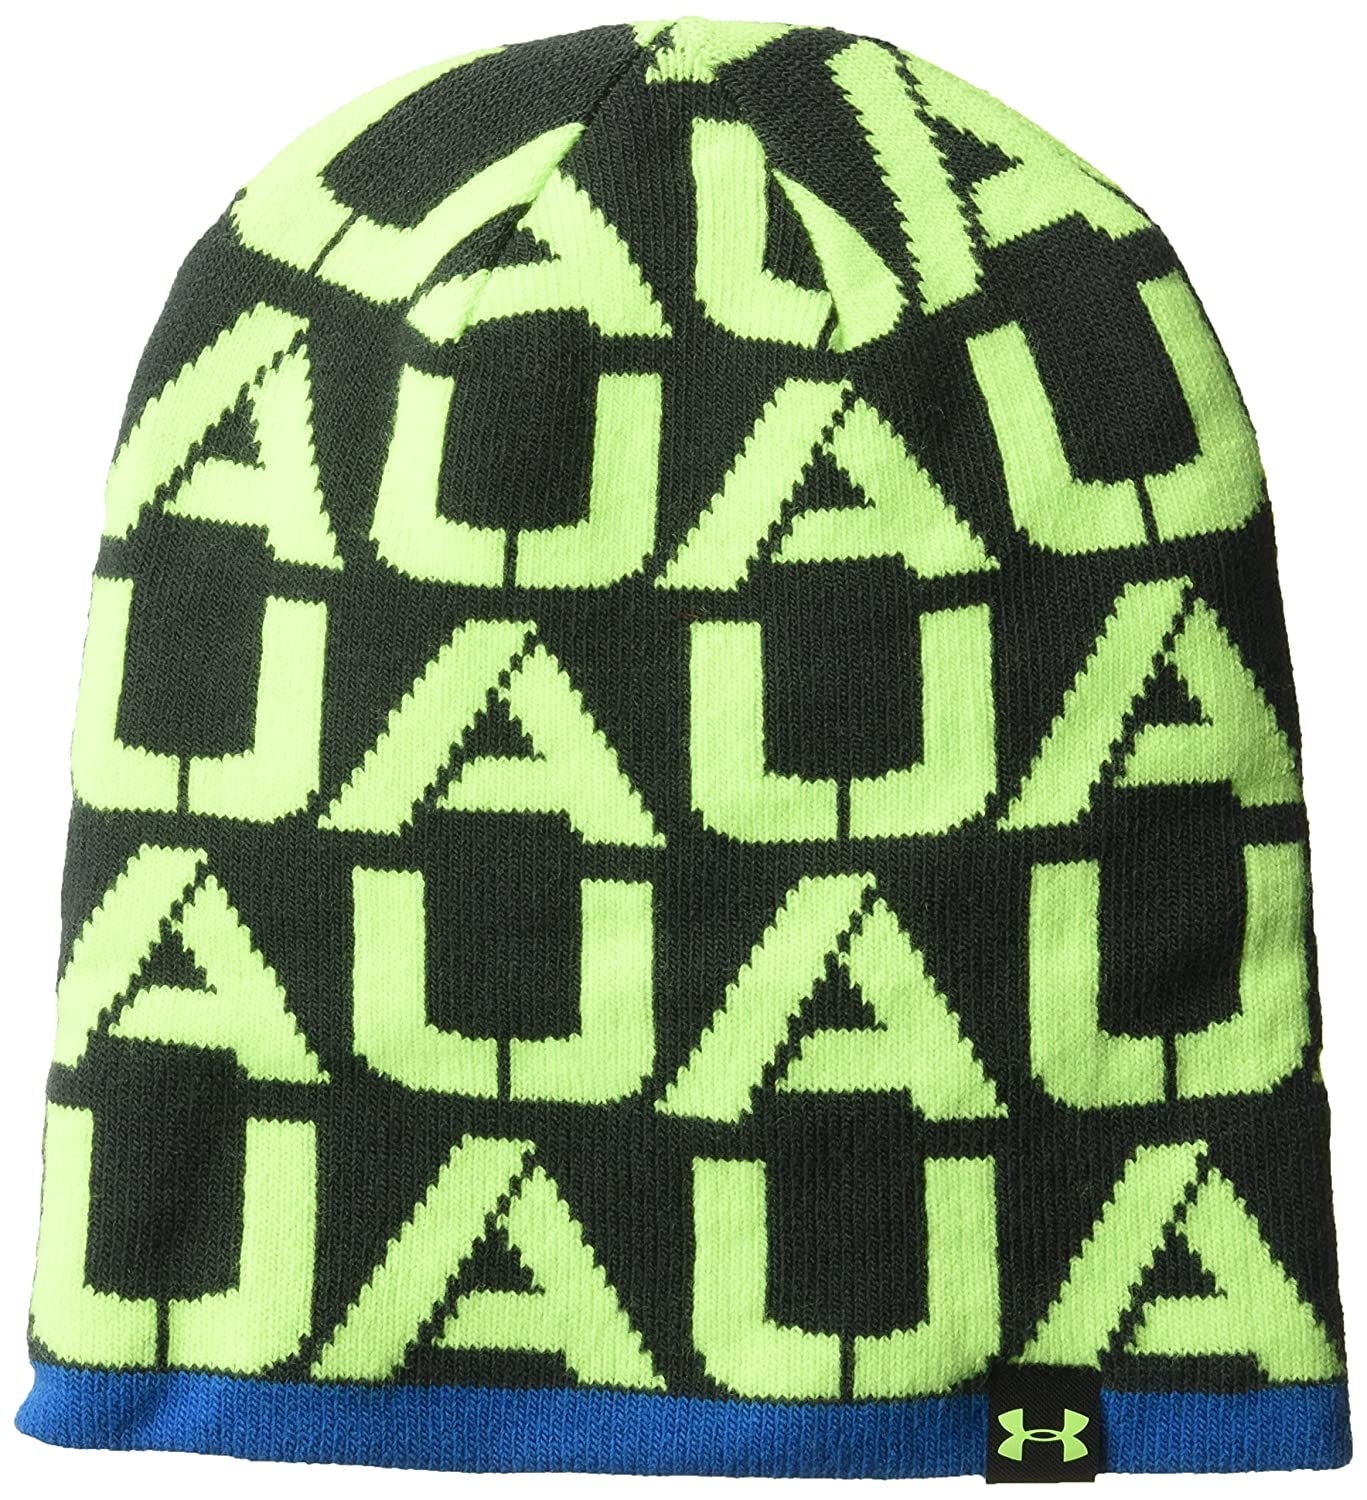 6e4b8f3b6d1 Under Armour Boys  B4-In-1 Beanie Quirky Lime Quirky Lime One